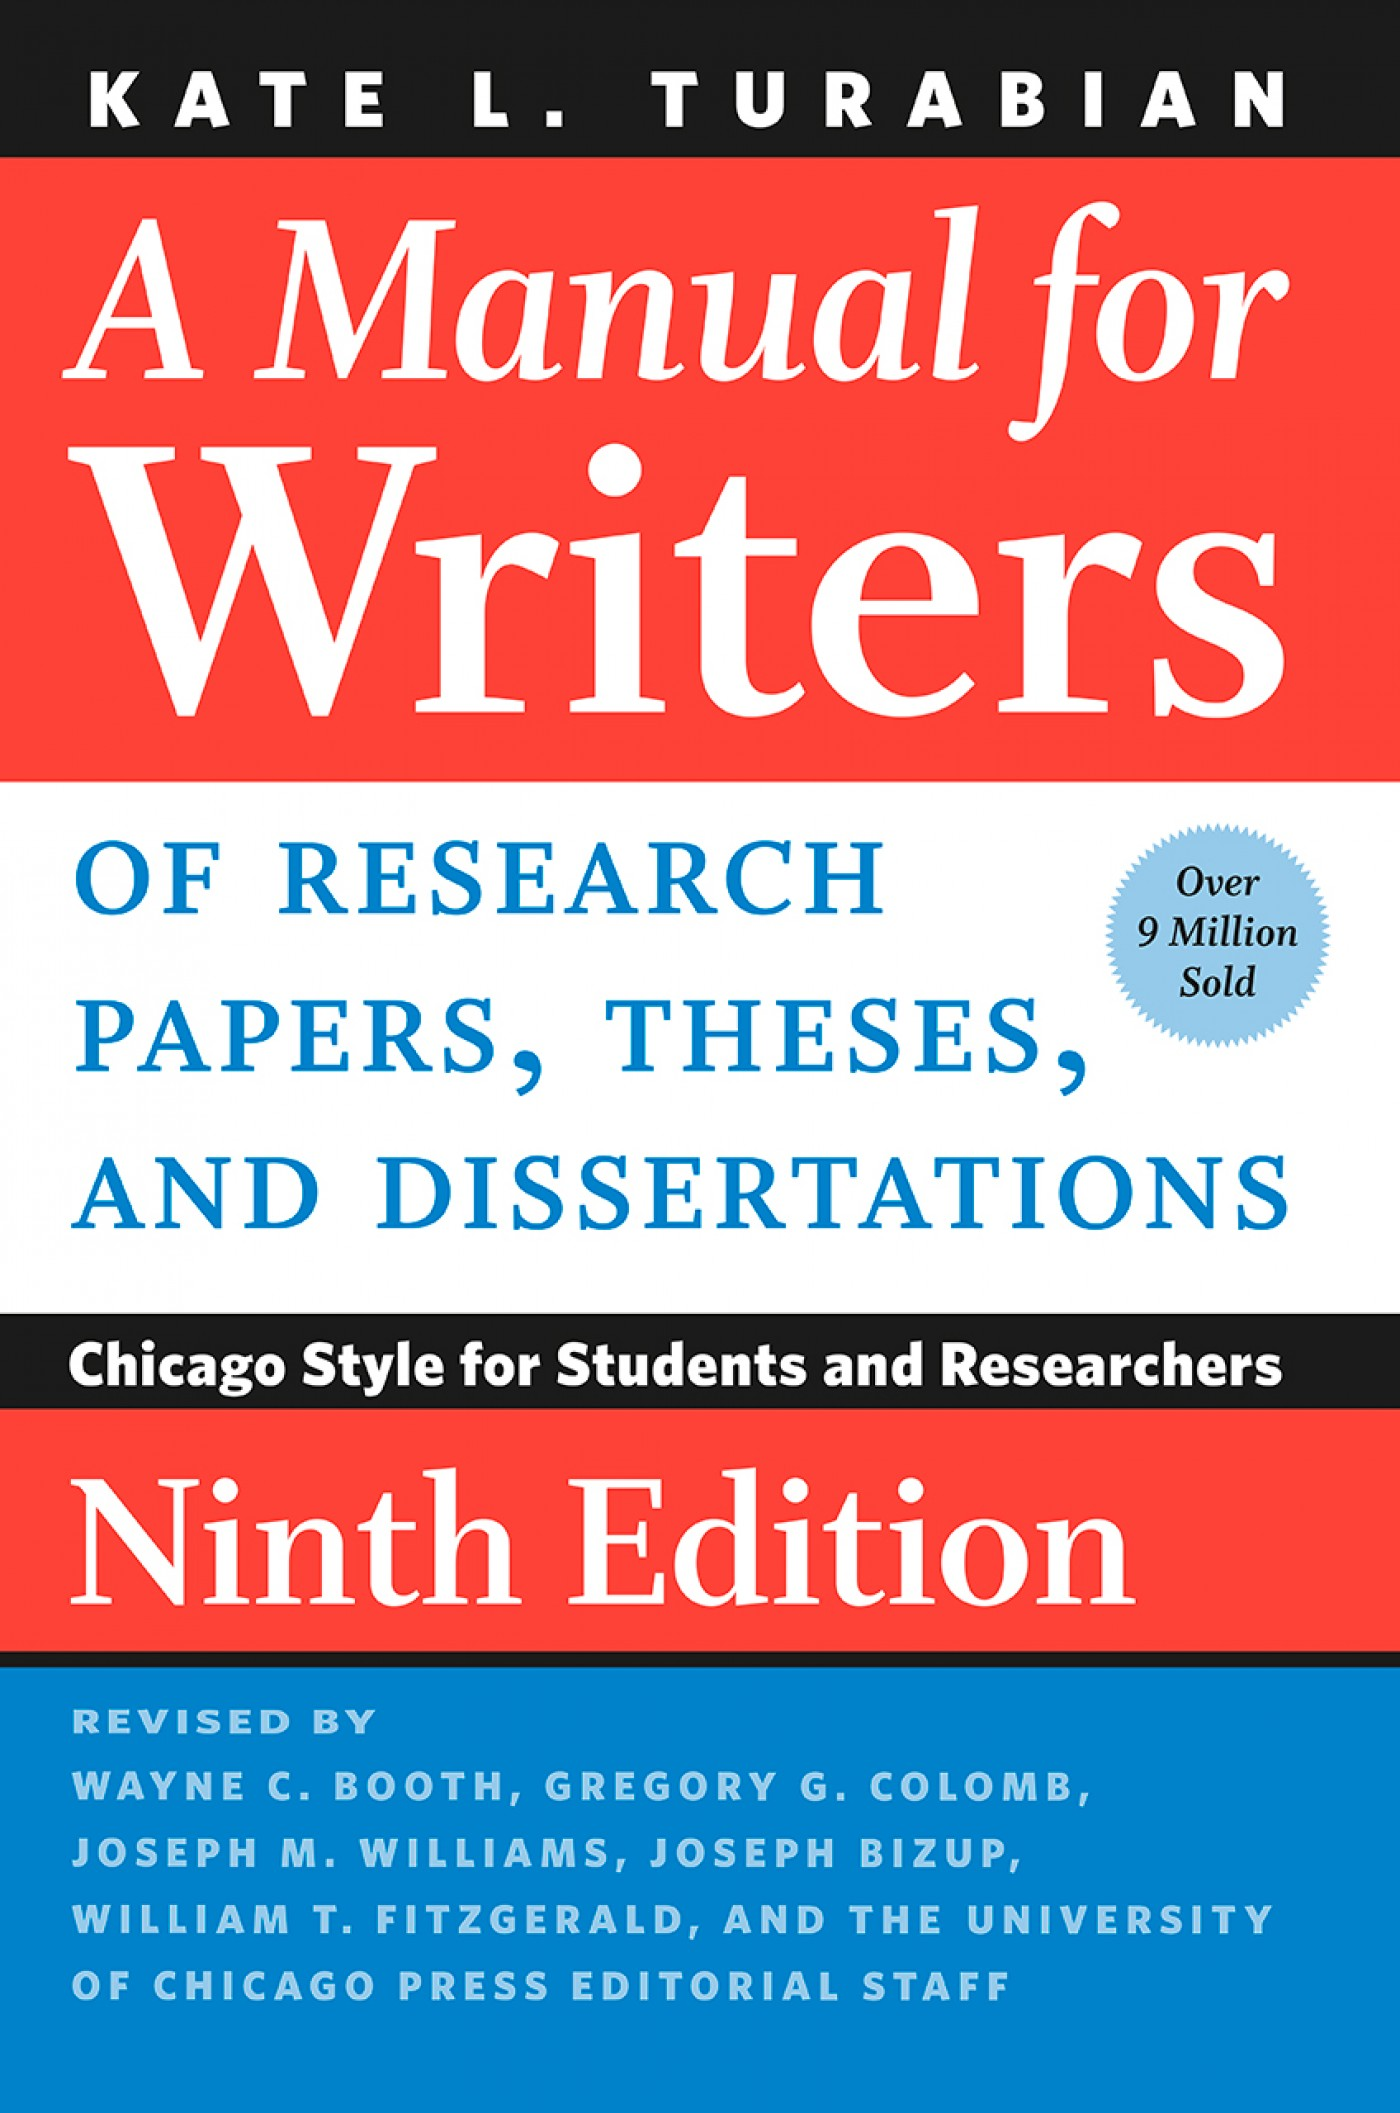 001 Manual For Writers Of Researchs Theses And Dissertations Sensational A Research Papers 8th Edition Pdf Eighth 1400